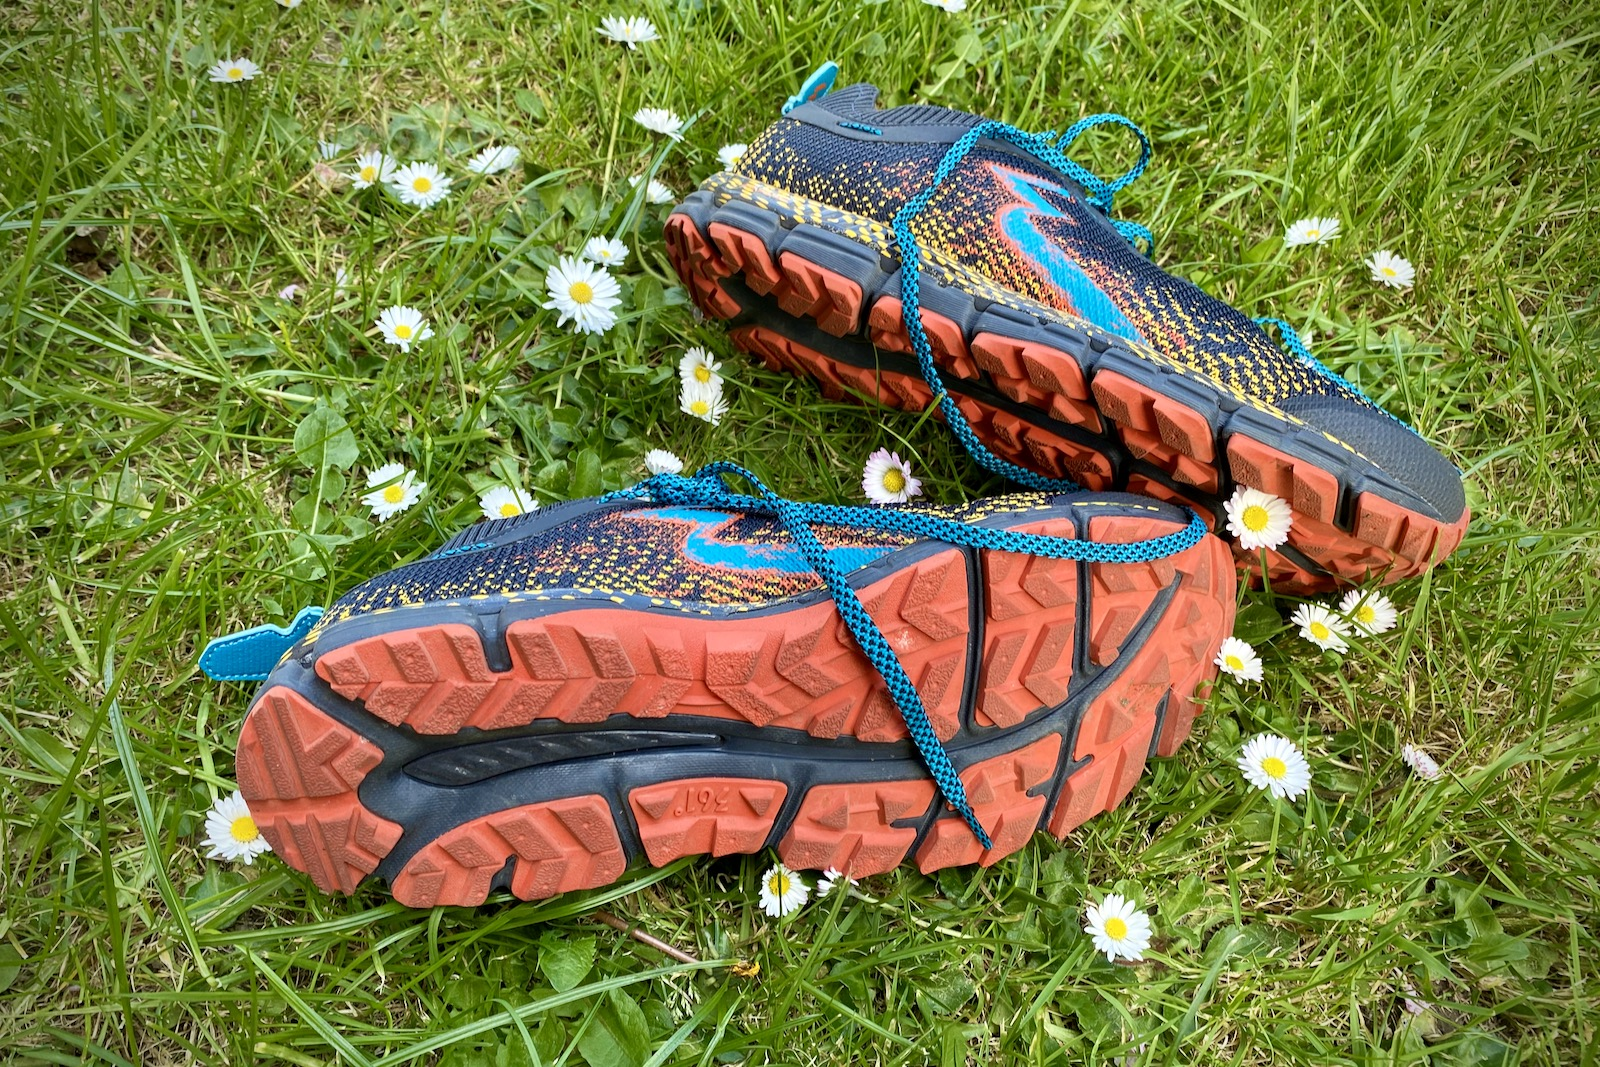 361 Degrees Taroko 2 Trail Running Shoes